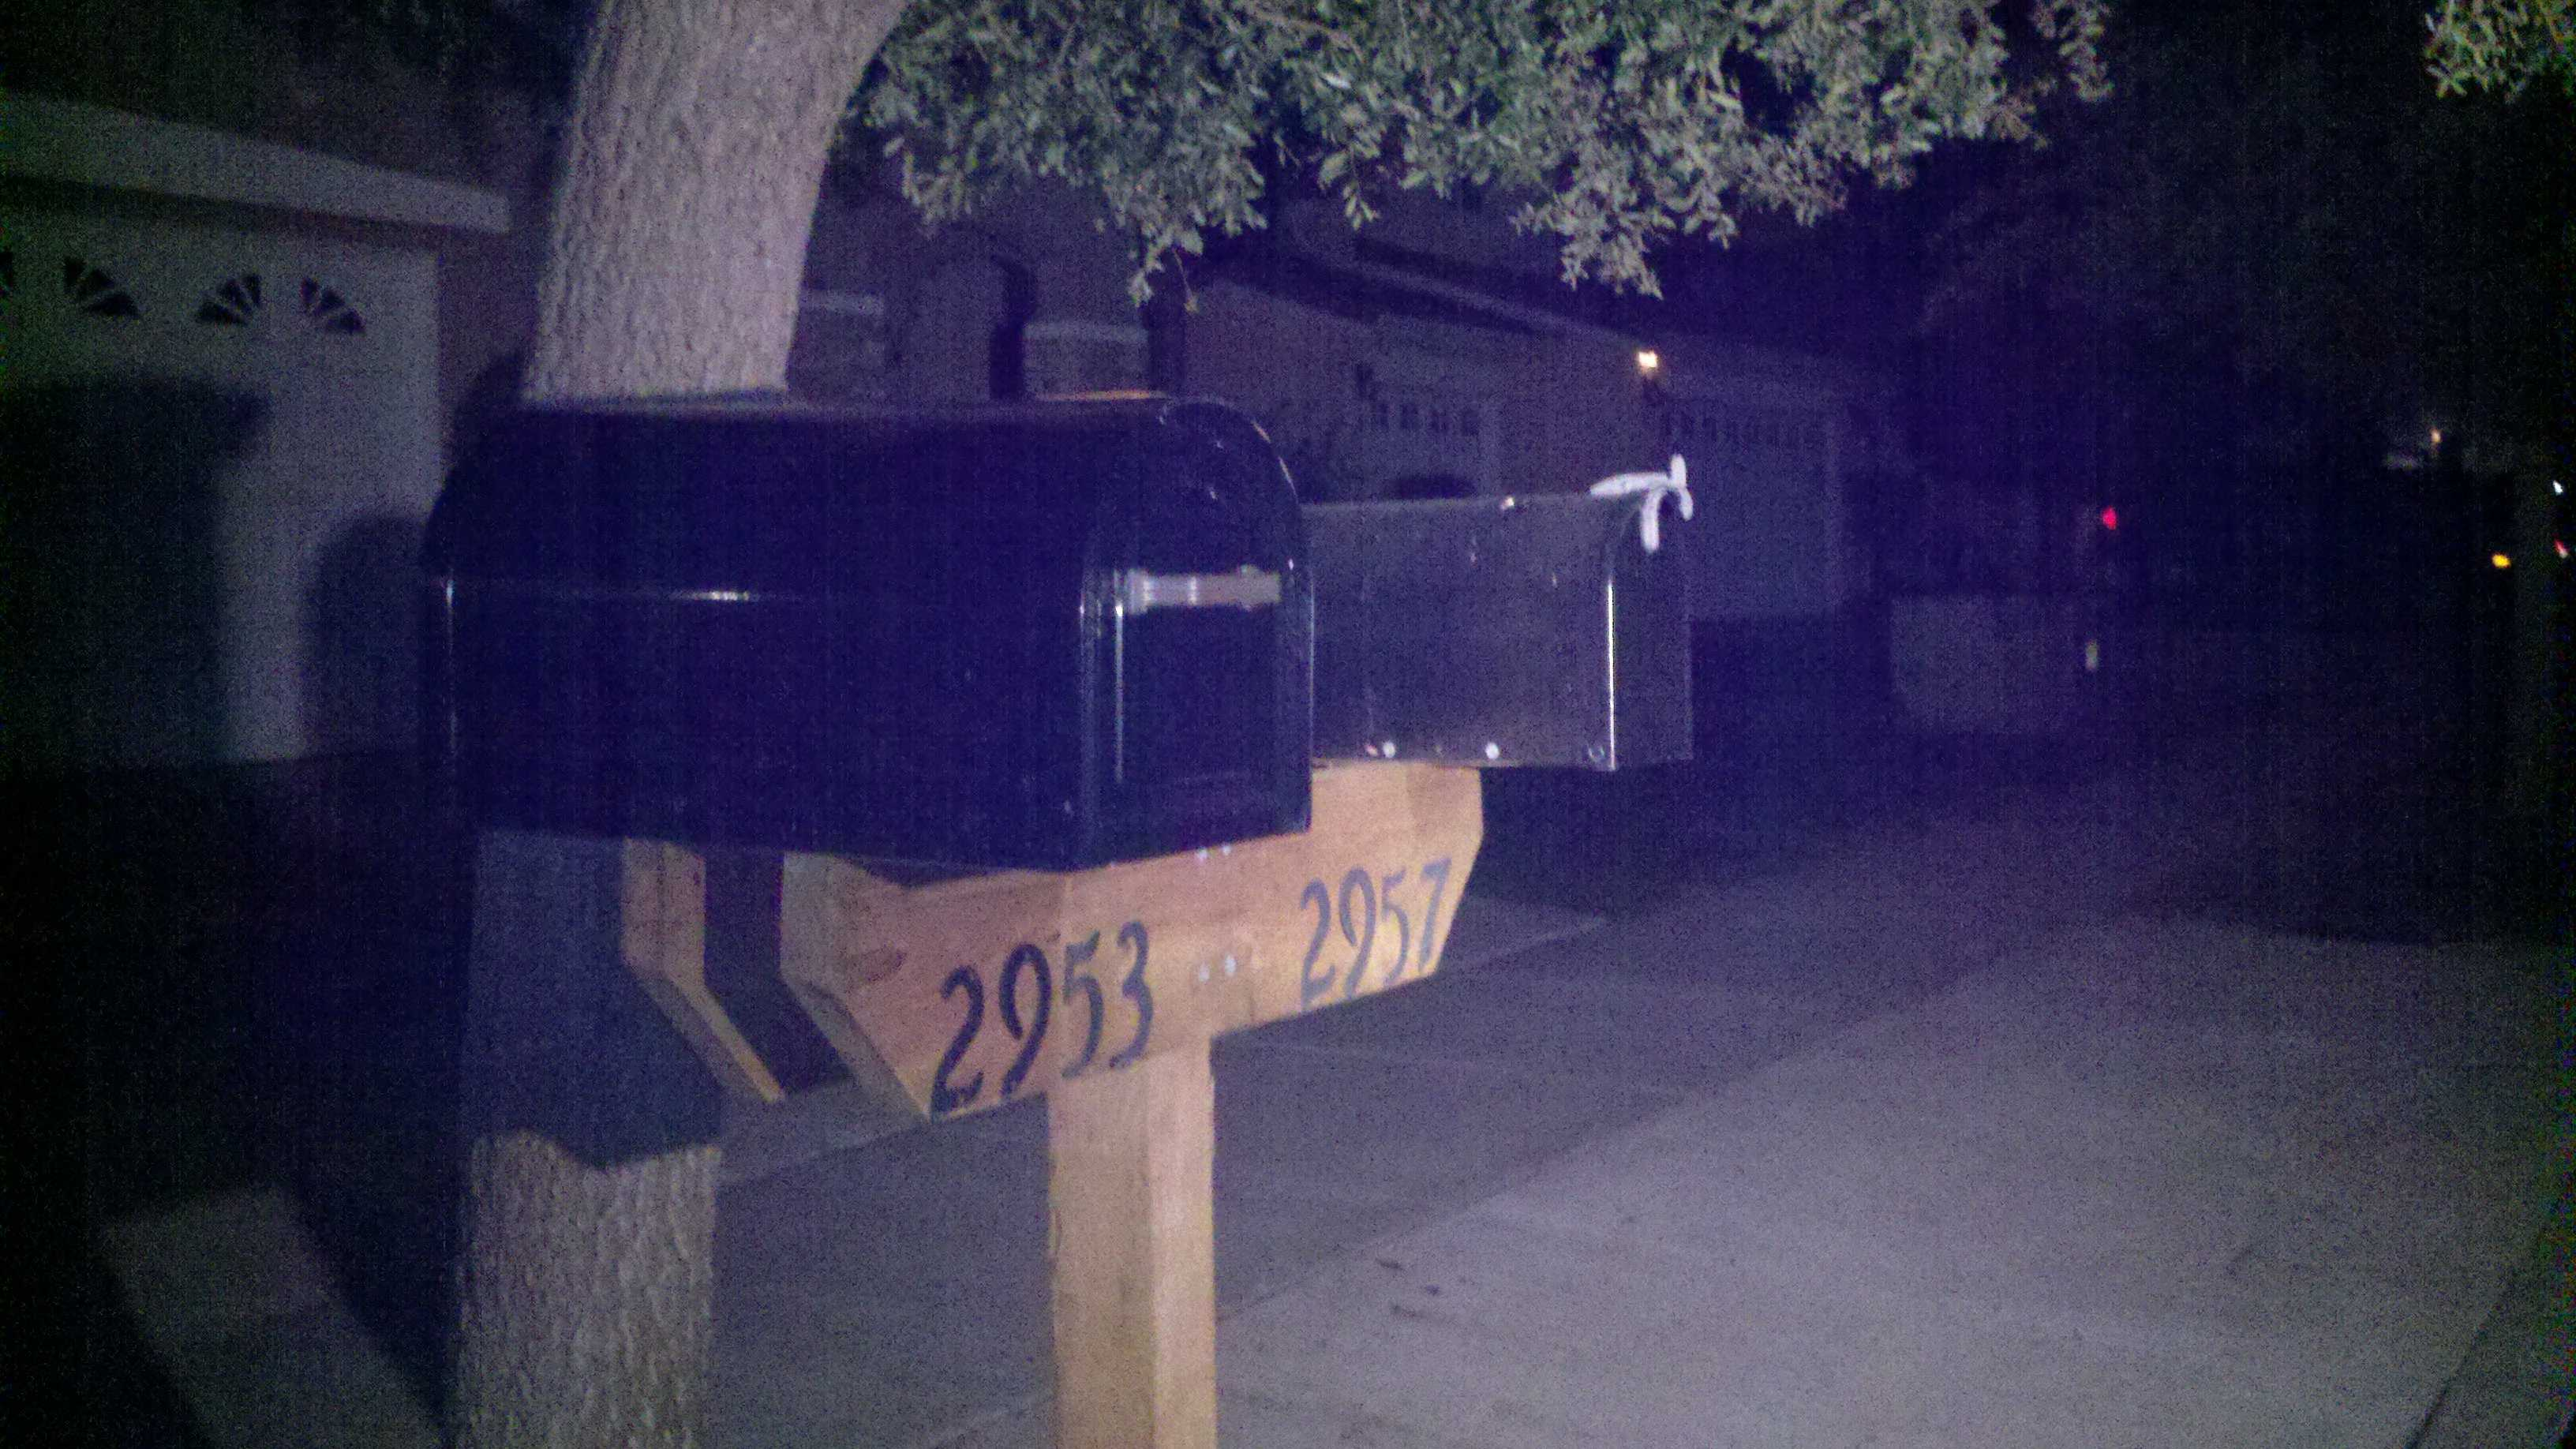 Fairfield police said mail thieves have been roaming the streets near Fairfield's Laurel Creek Park.